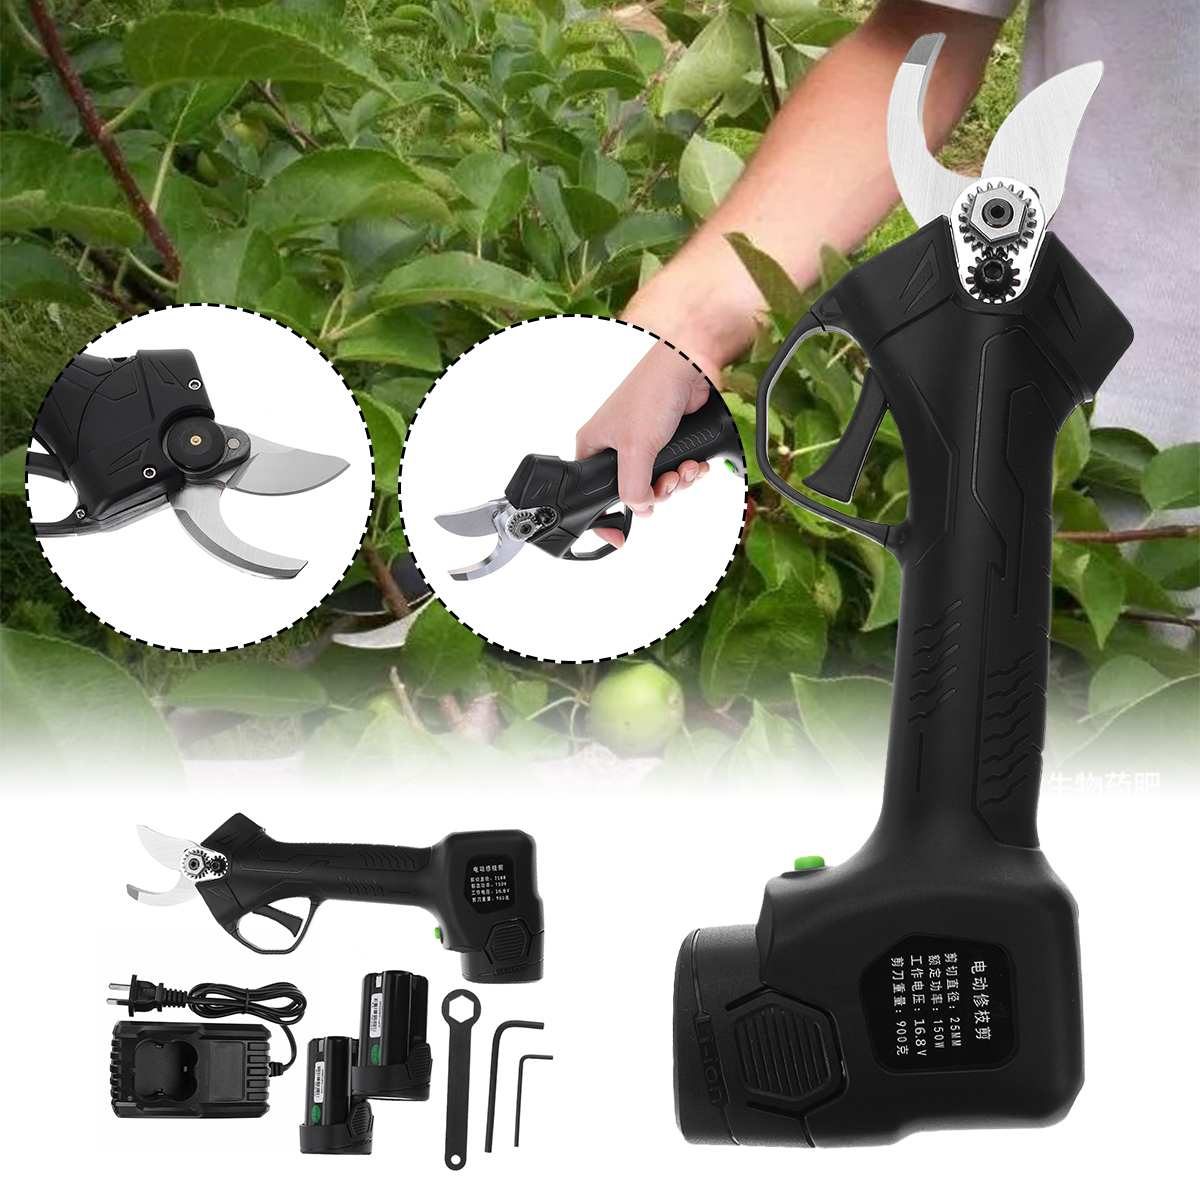 16.8V Cordless Electric Secateur Branch Cutter Pruner Pruning Shears W/ 2Pcs Li-ion Battery Efficient Fruit Tree Bonsai Pruning